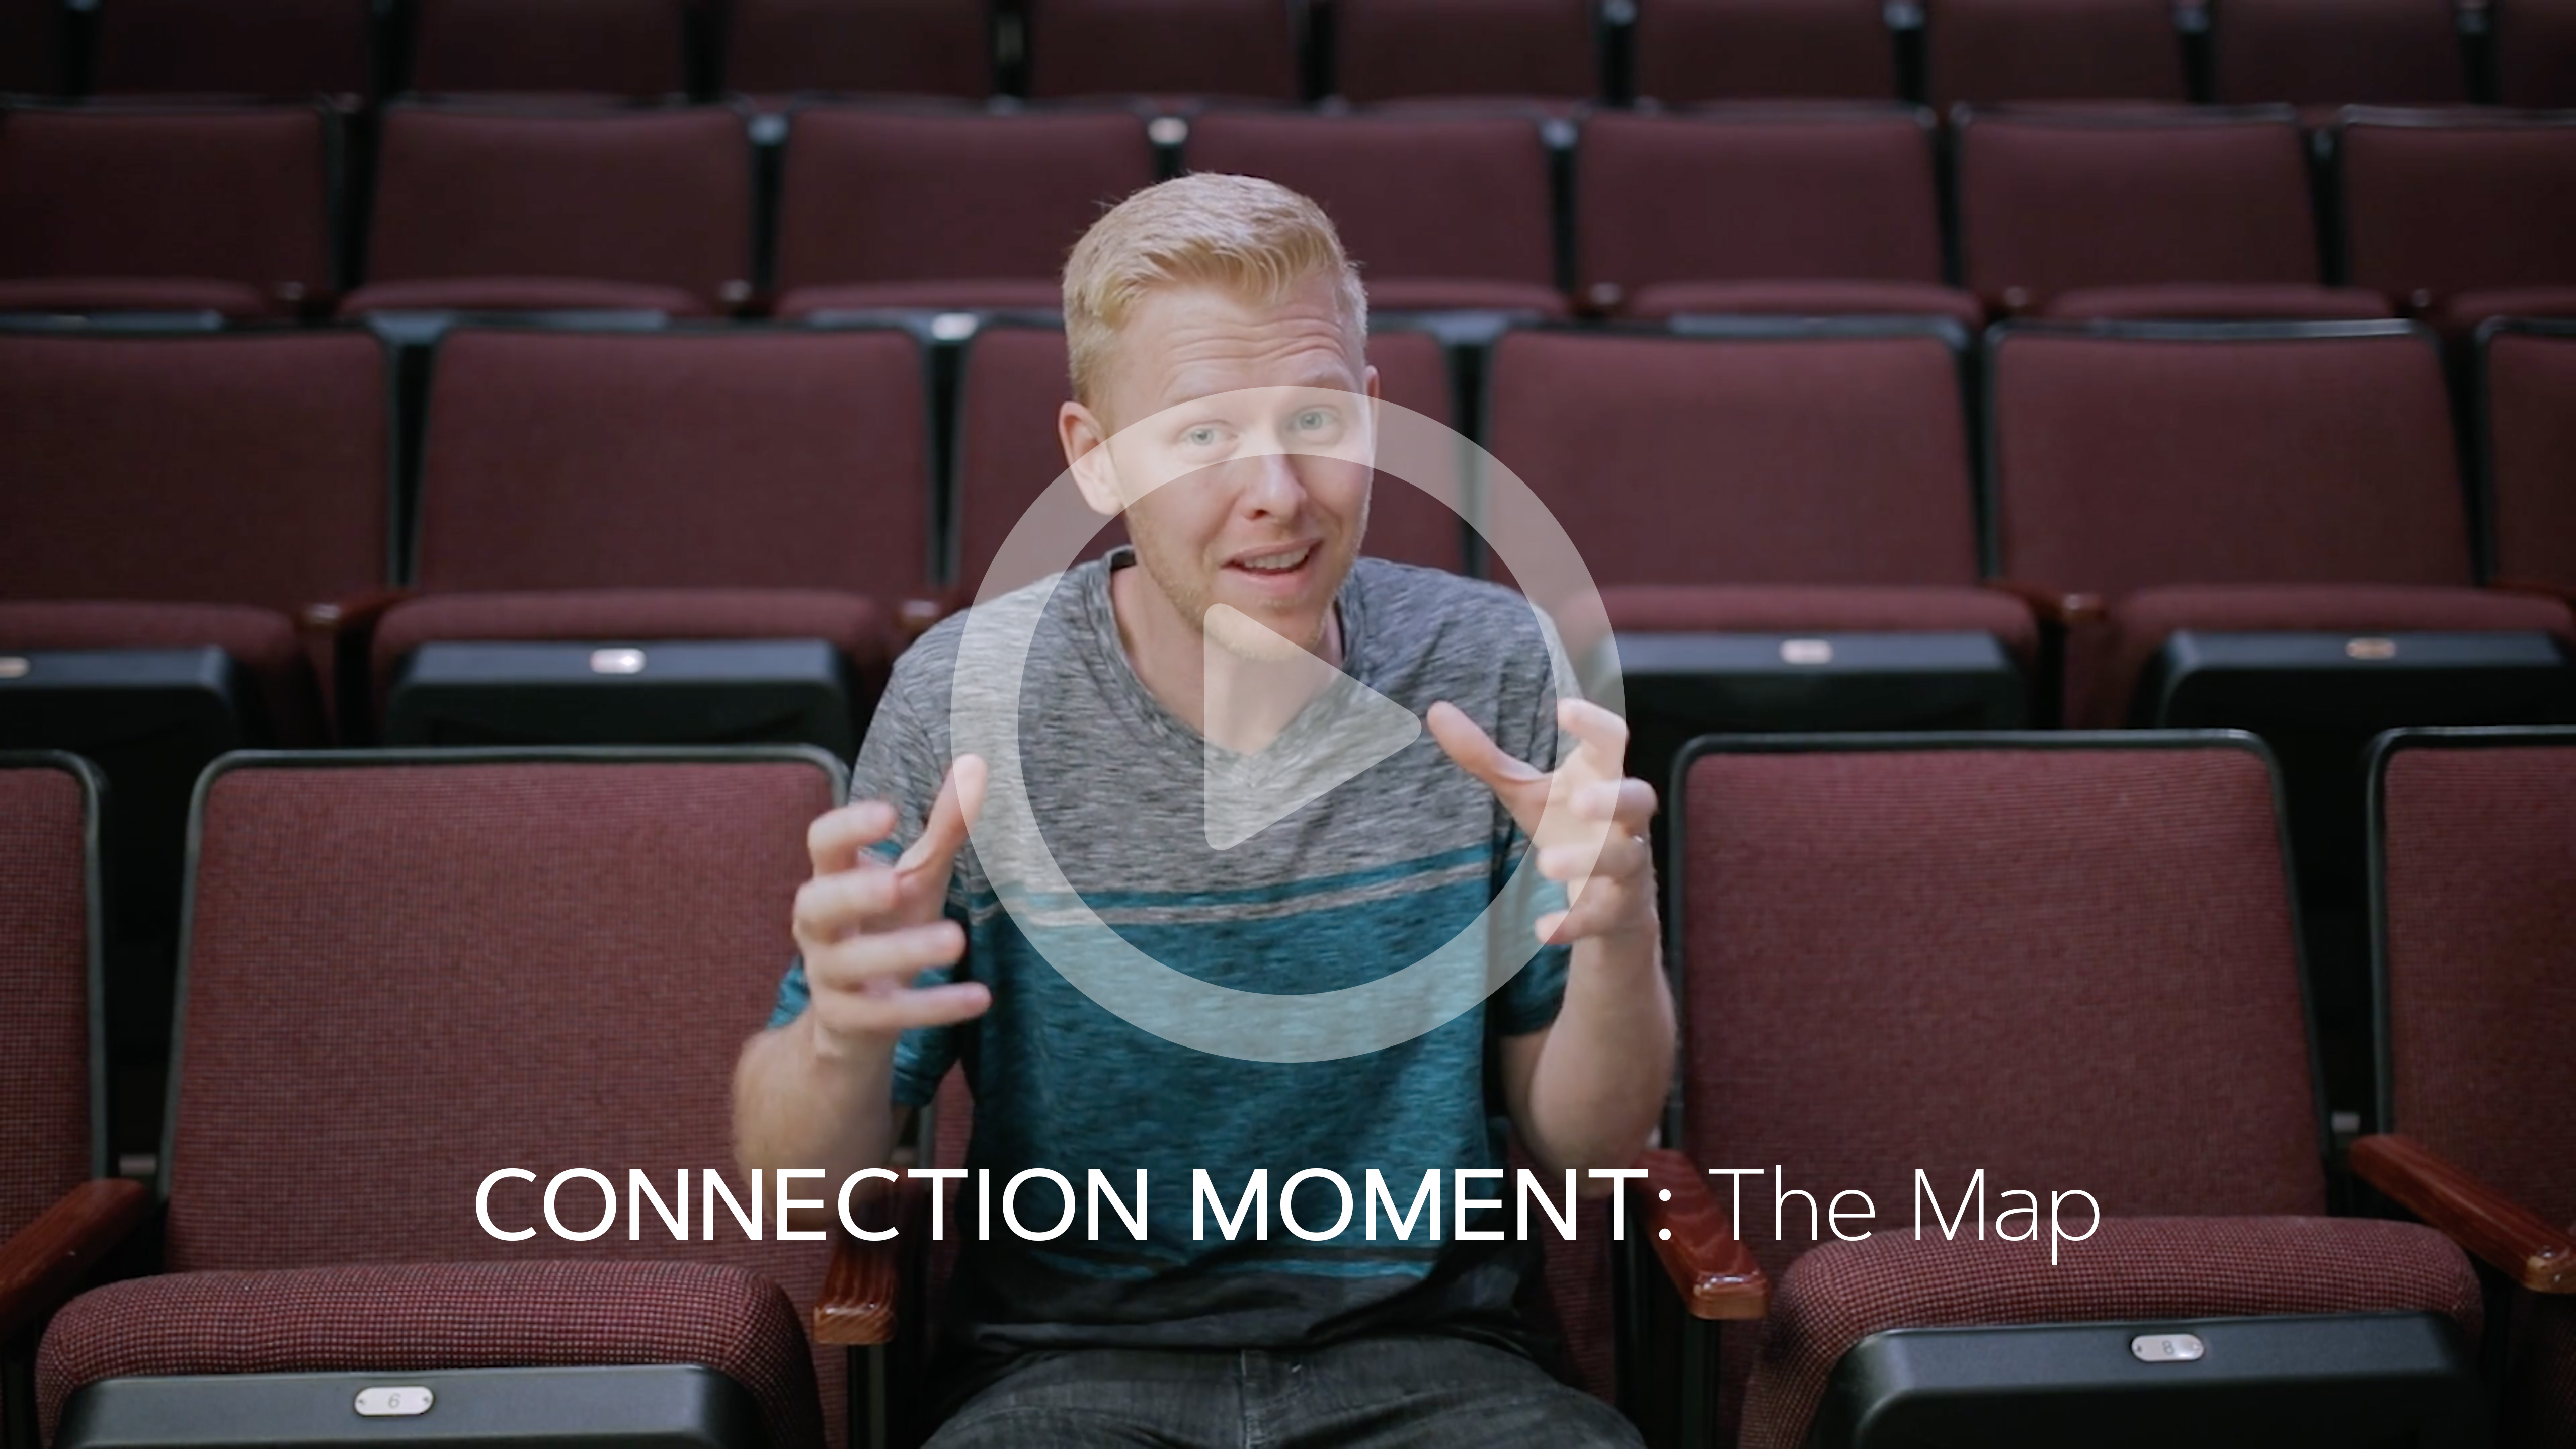 Connection Moment: The Map